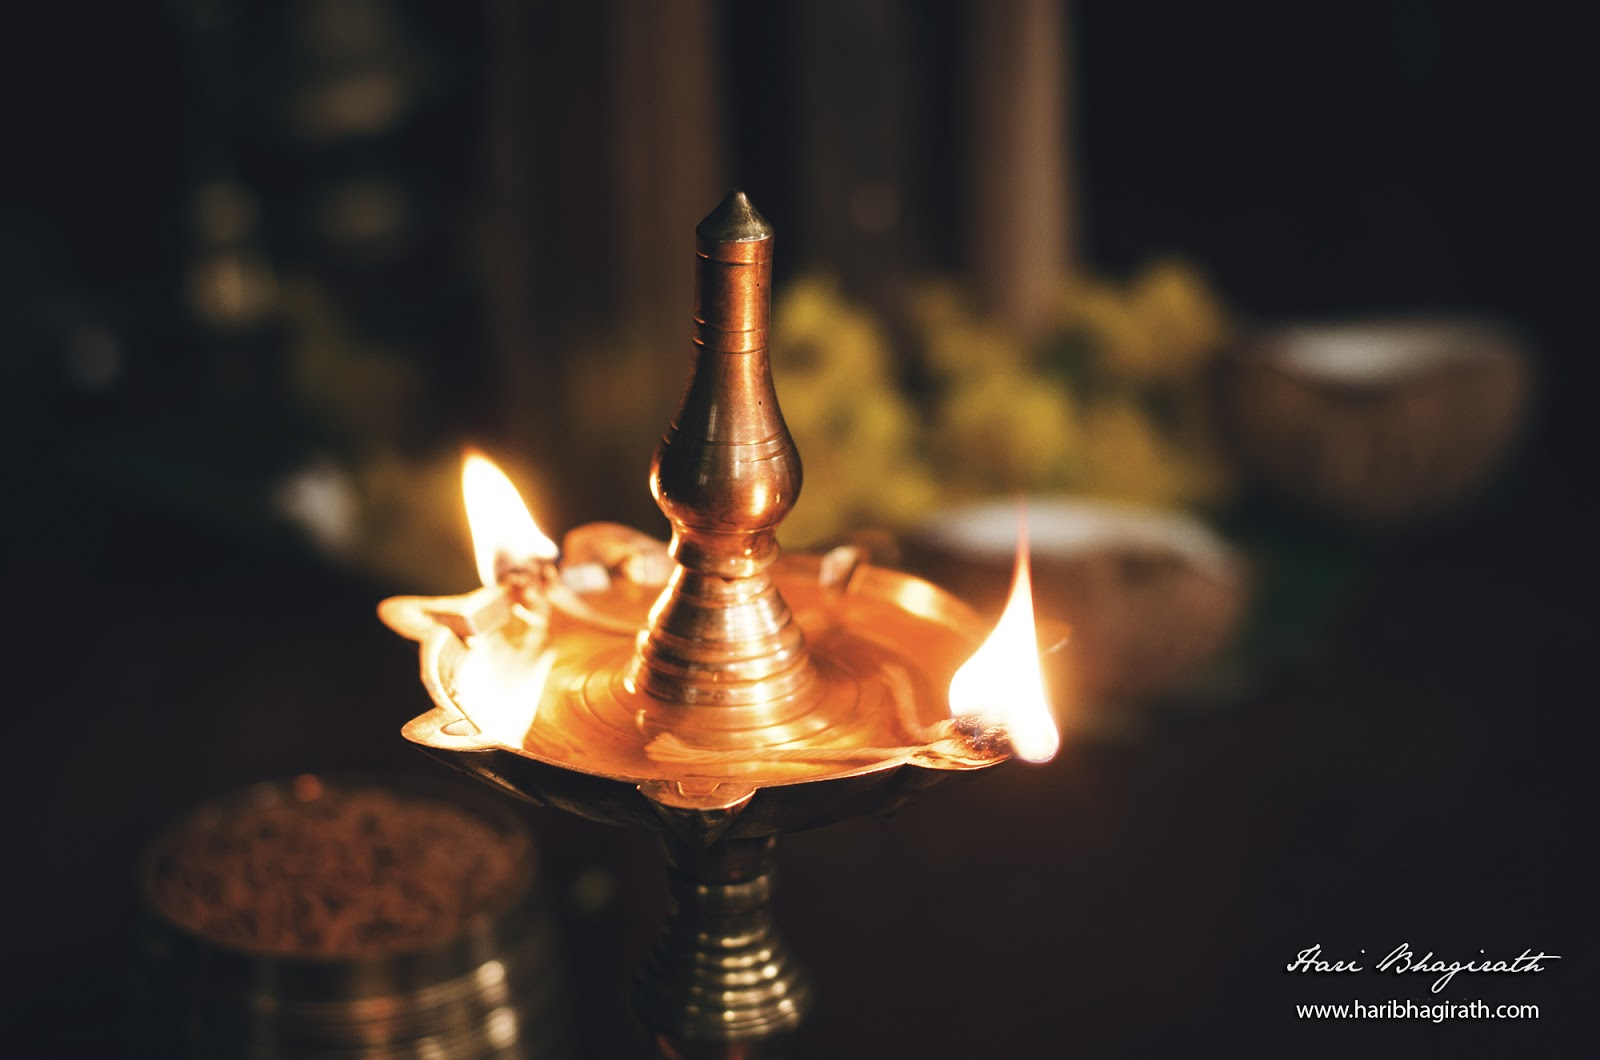 Irinjalakuda: Lighting the Lamp